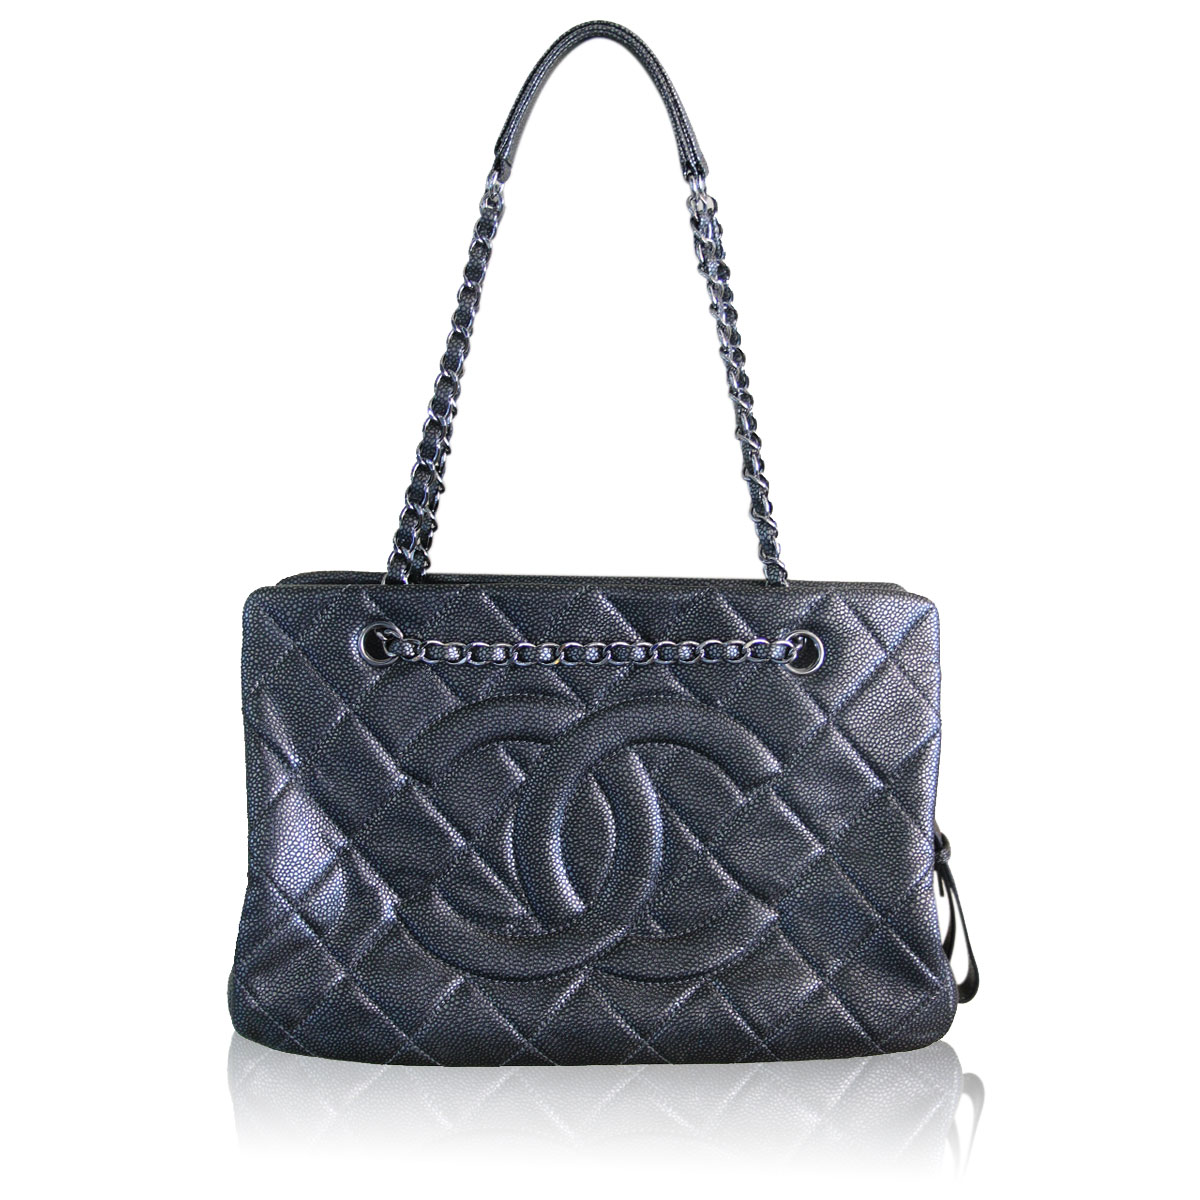 Chanel Medium Grand Shopper Tote Bag